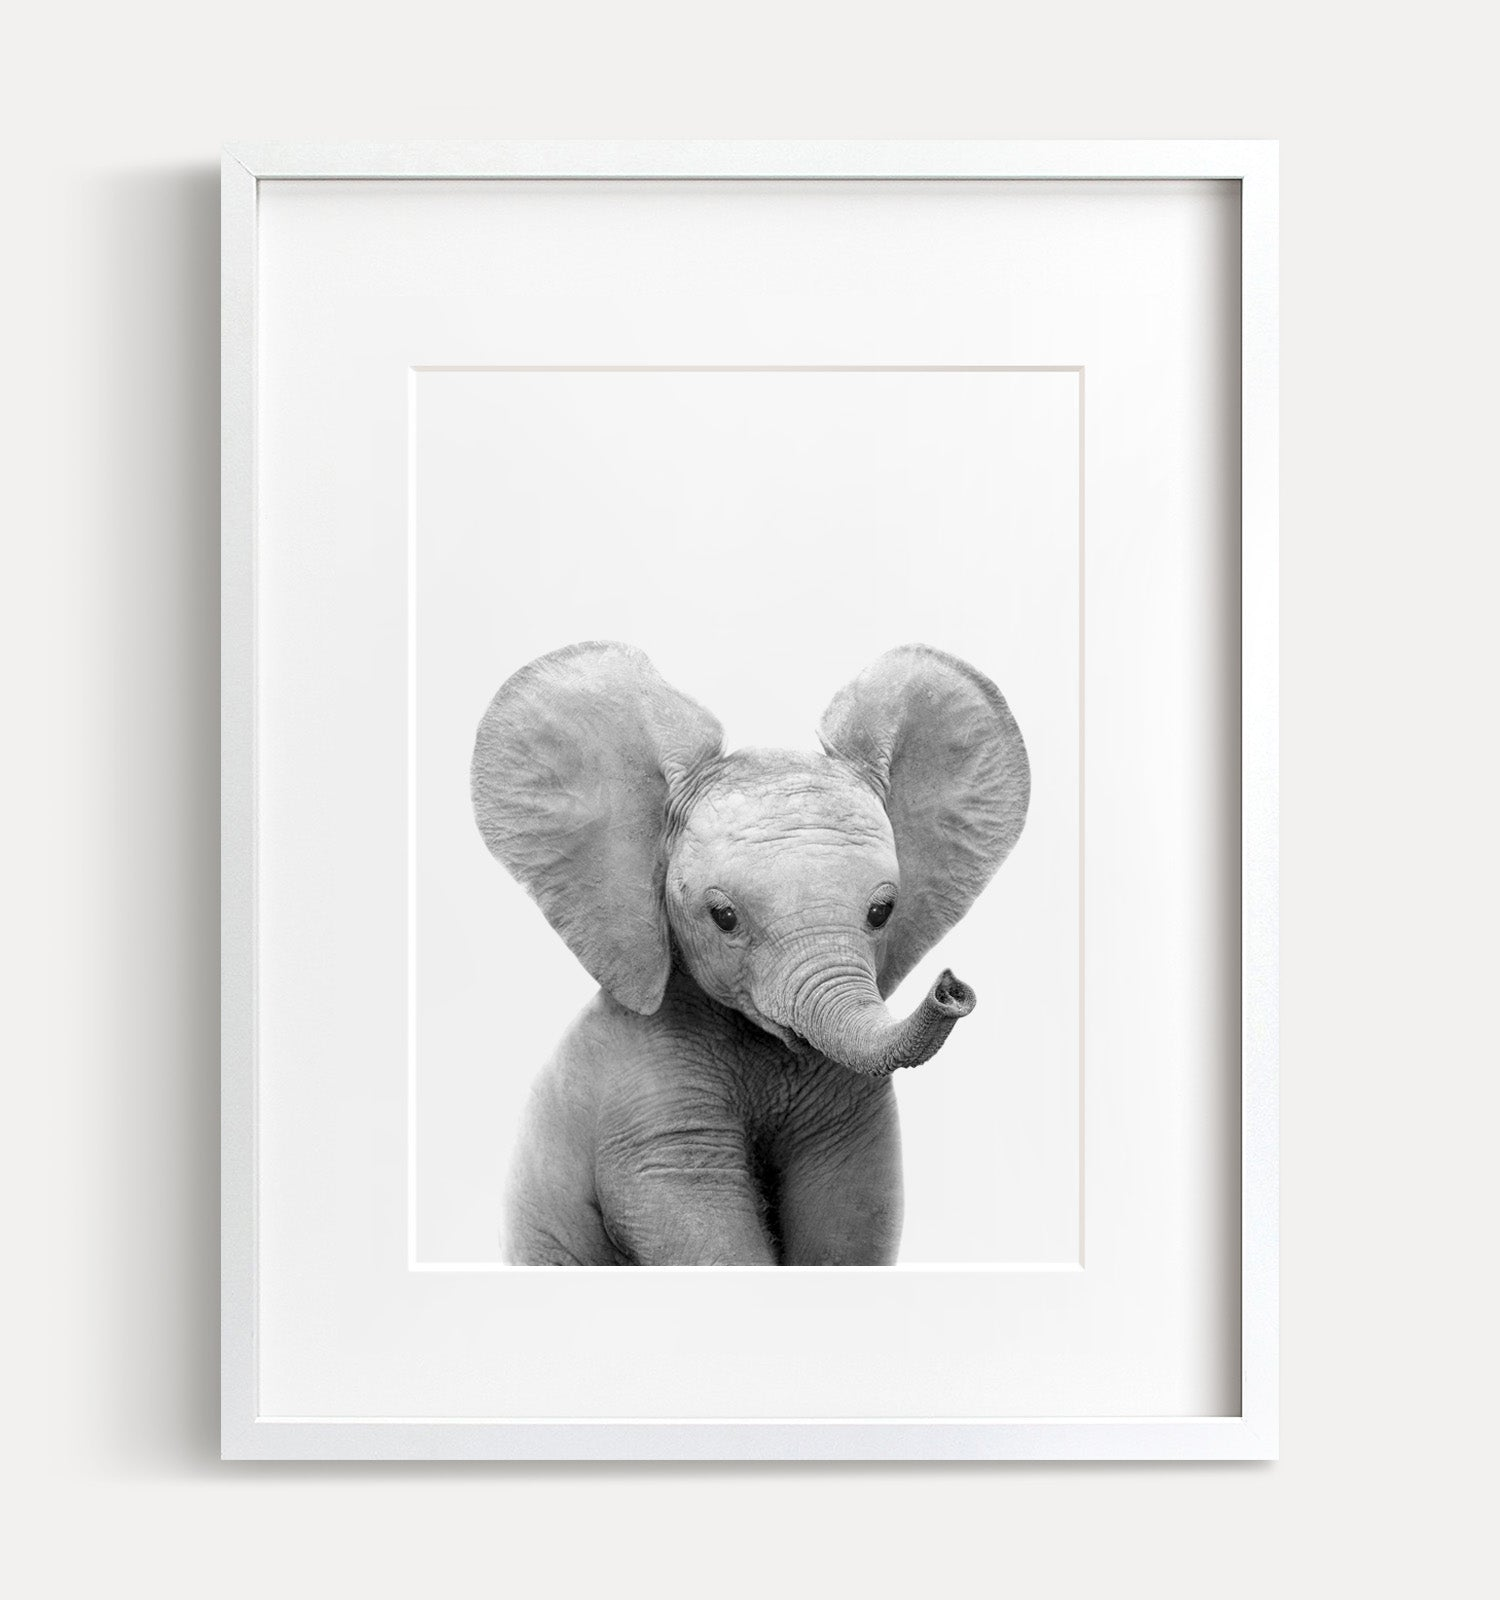 Baby Elephant Print - Black and White - The Crown Prints